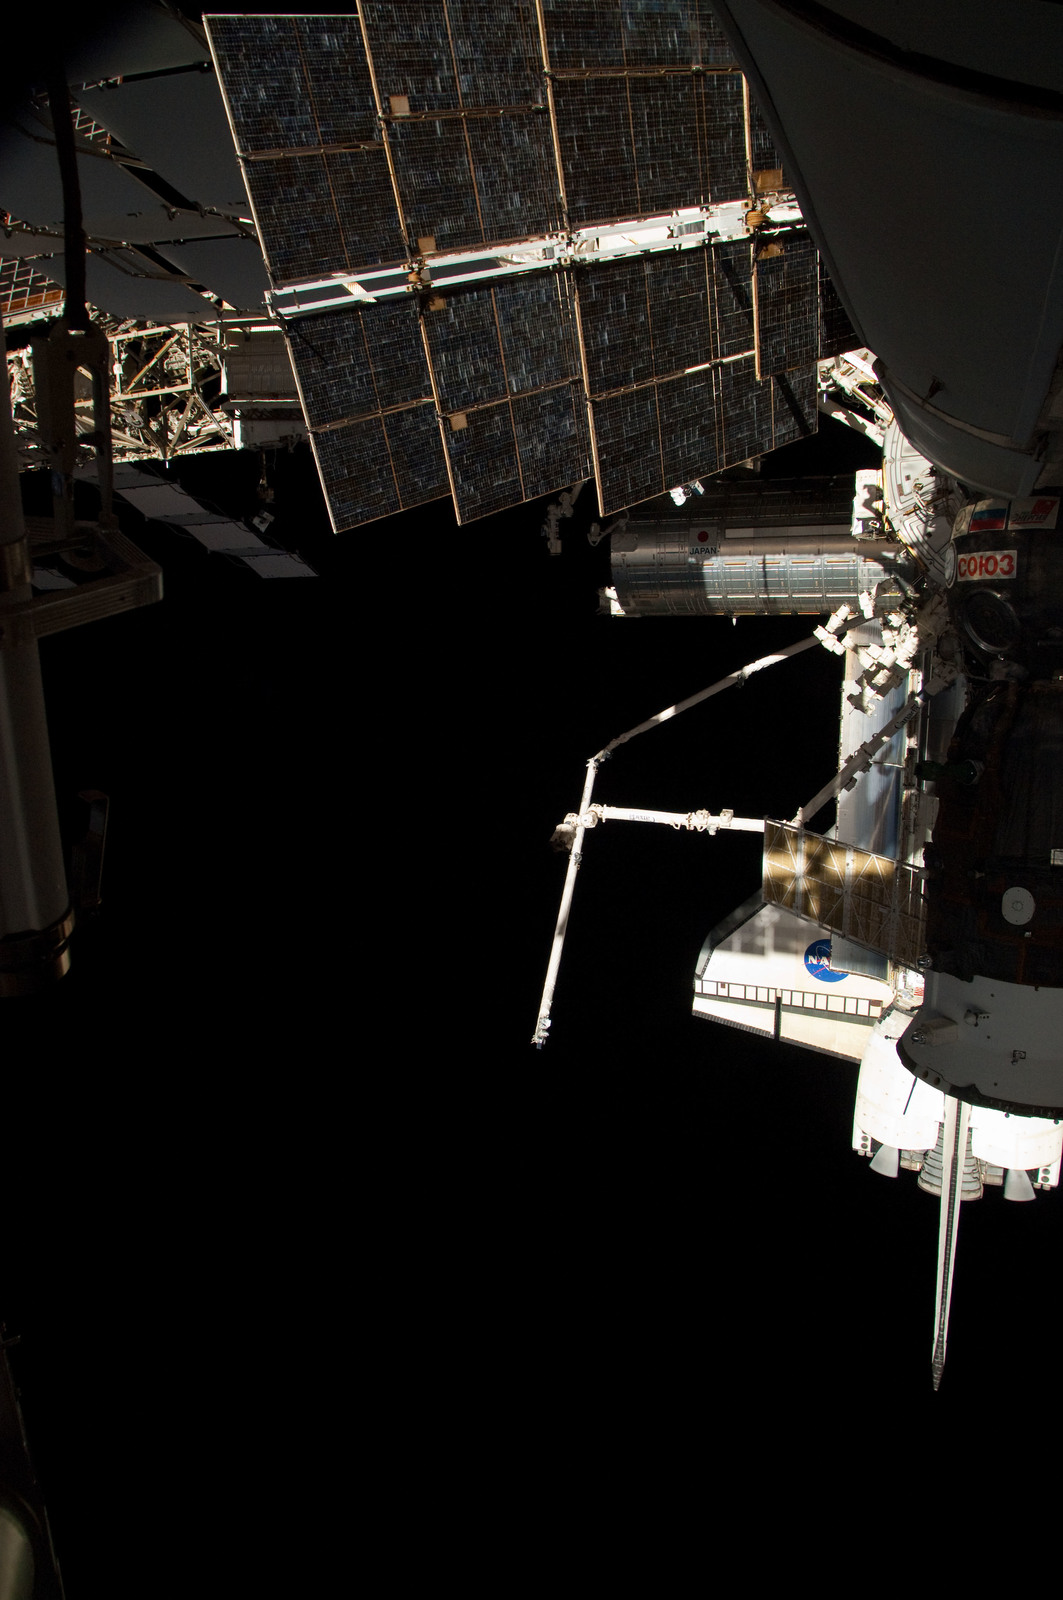 S126E025041 - STS-126 - View of ISS, Docked Soyuz and Endeavour